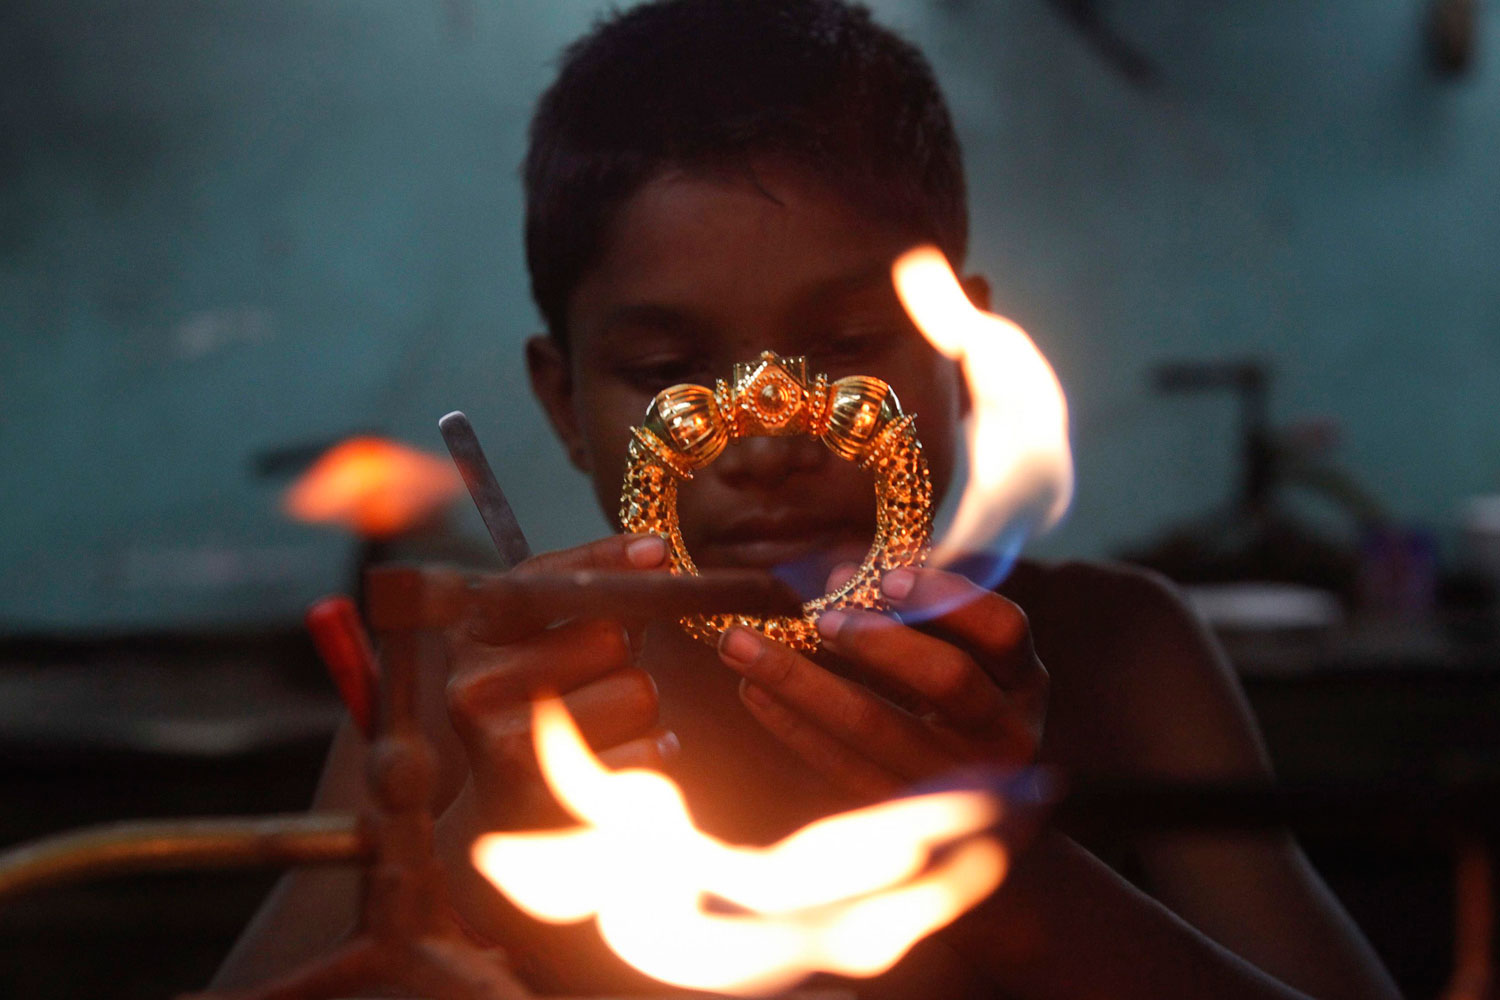 August 1, 2011. A goldsmith works on a gold bangle at a workshop in Kolkata. India gold futures fell on Monday afternoon weighed by weak overseas markets and a stronger rupee back home, though physical buyers awaited bigger falls before gearing up for festivals slated later this month, dealers said.